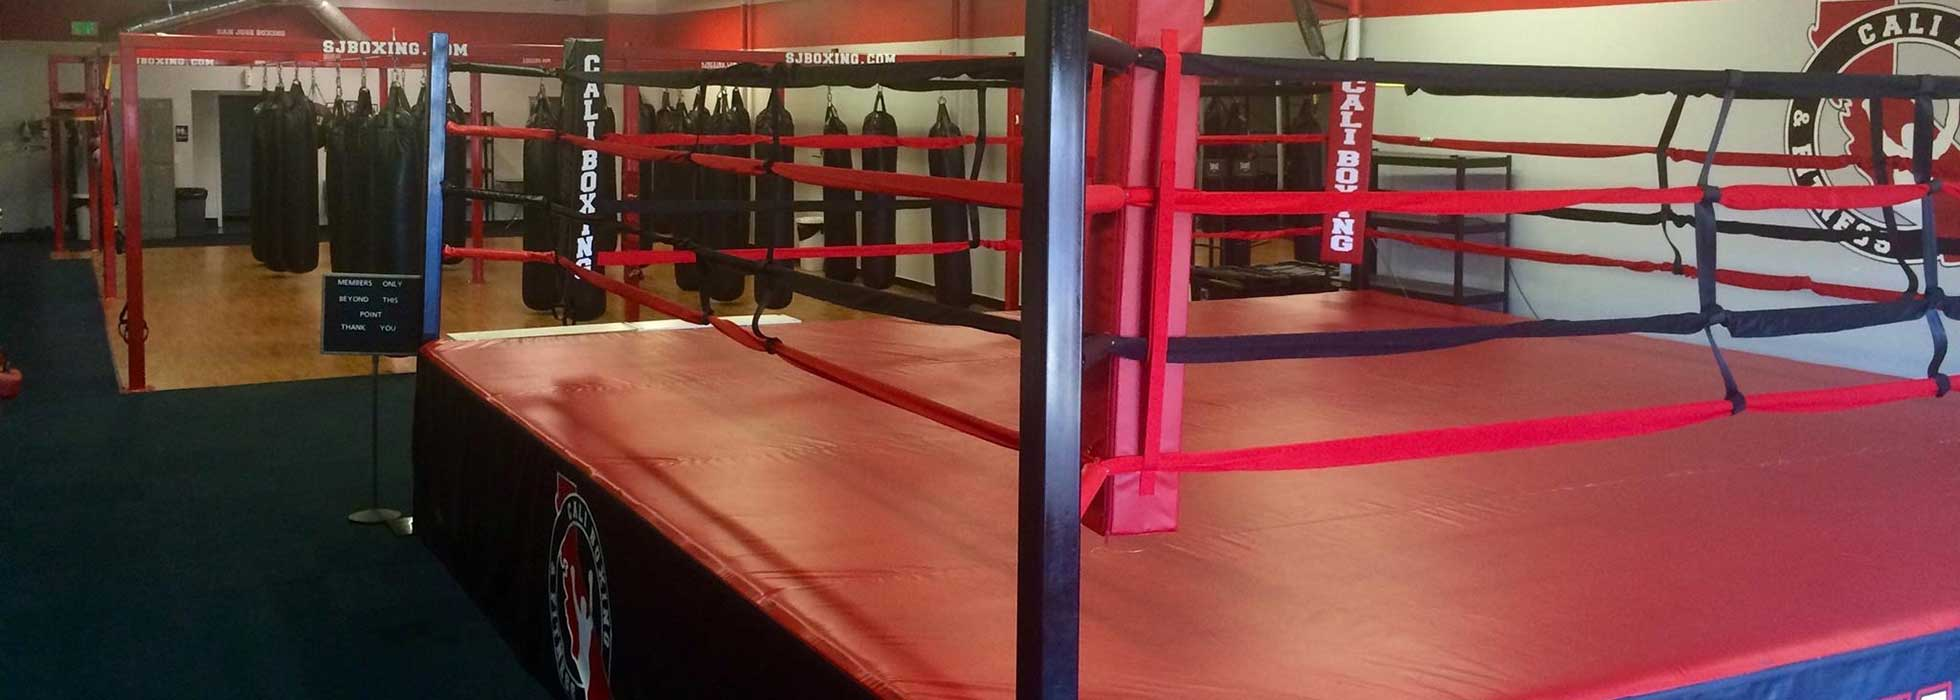 Why Cali Boxing & Fitness Is Ranked One Of The Best Gyms near San Jose CA, Why Cali Boxing & Fitness Is Ranked One Of The Best Gyms near the Eastside San Jose CA, Why Cali Boxing & Fitness Is Ranked One Of The Best Gyms near Downtown San Jose CA, Why Cali Boxing & Fitness Is Ranked One Of The Best Gyms near Milpitas CA